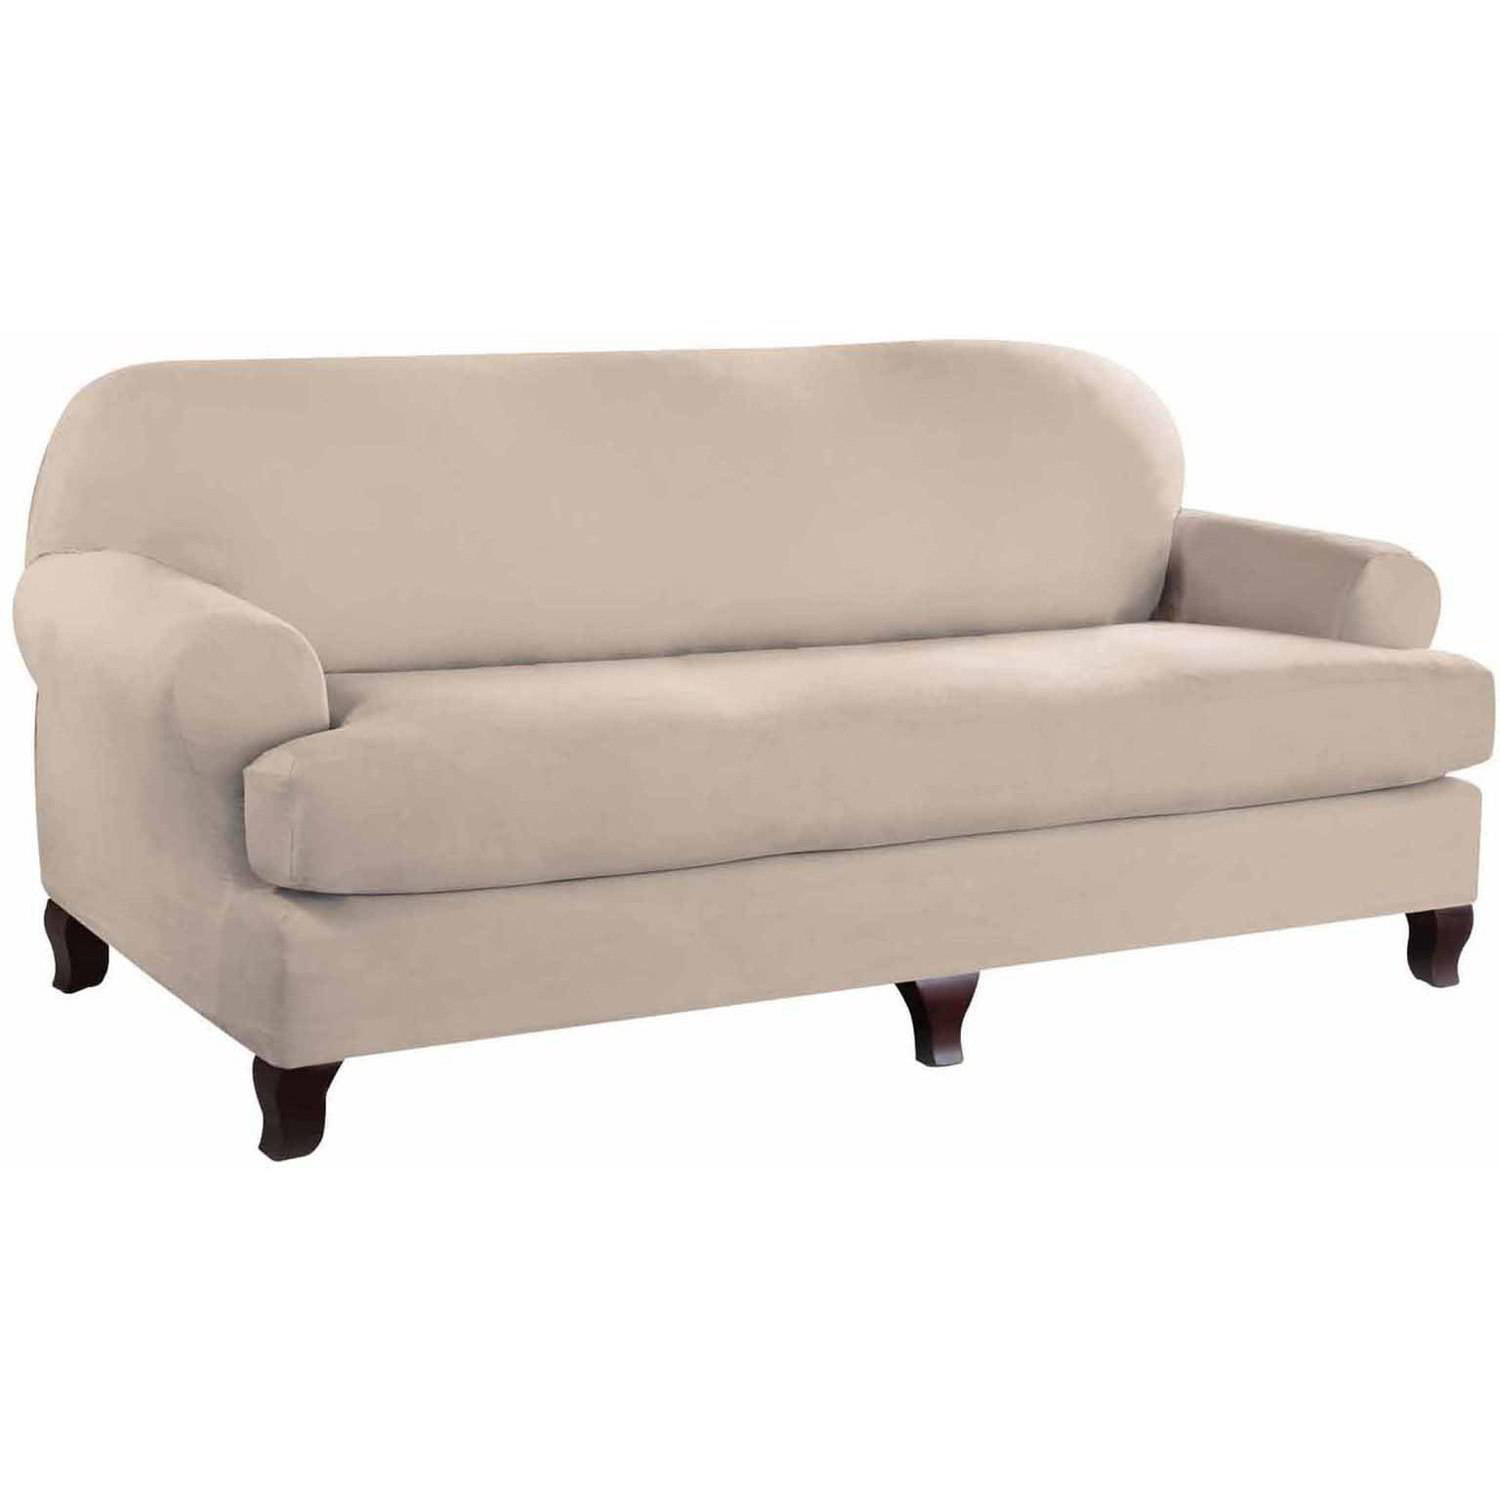 Serta Stretch Fit Microsuede Slipcover Sofa 2-Piece T Cushion - Walmart .com  sc 1 st  Walmart : sectional slipcovers walmart - Sectionals, Sofas & Couches